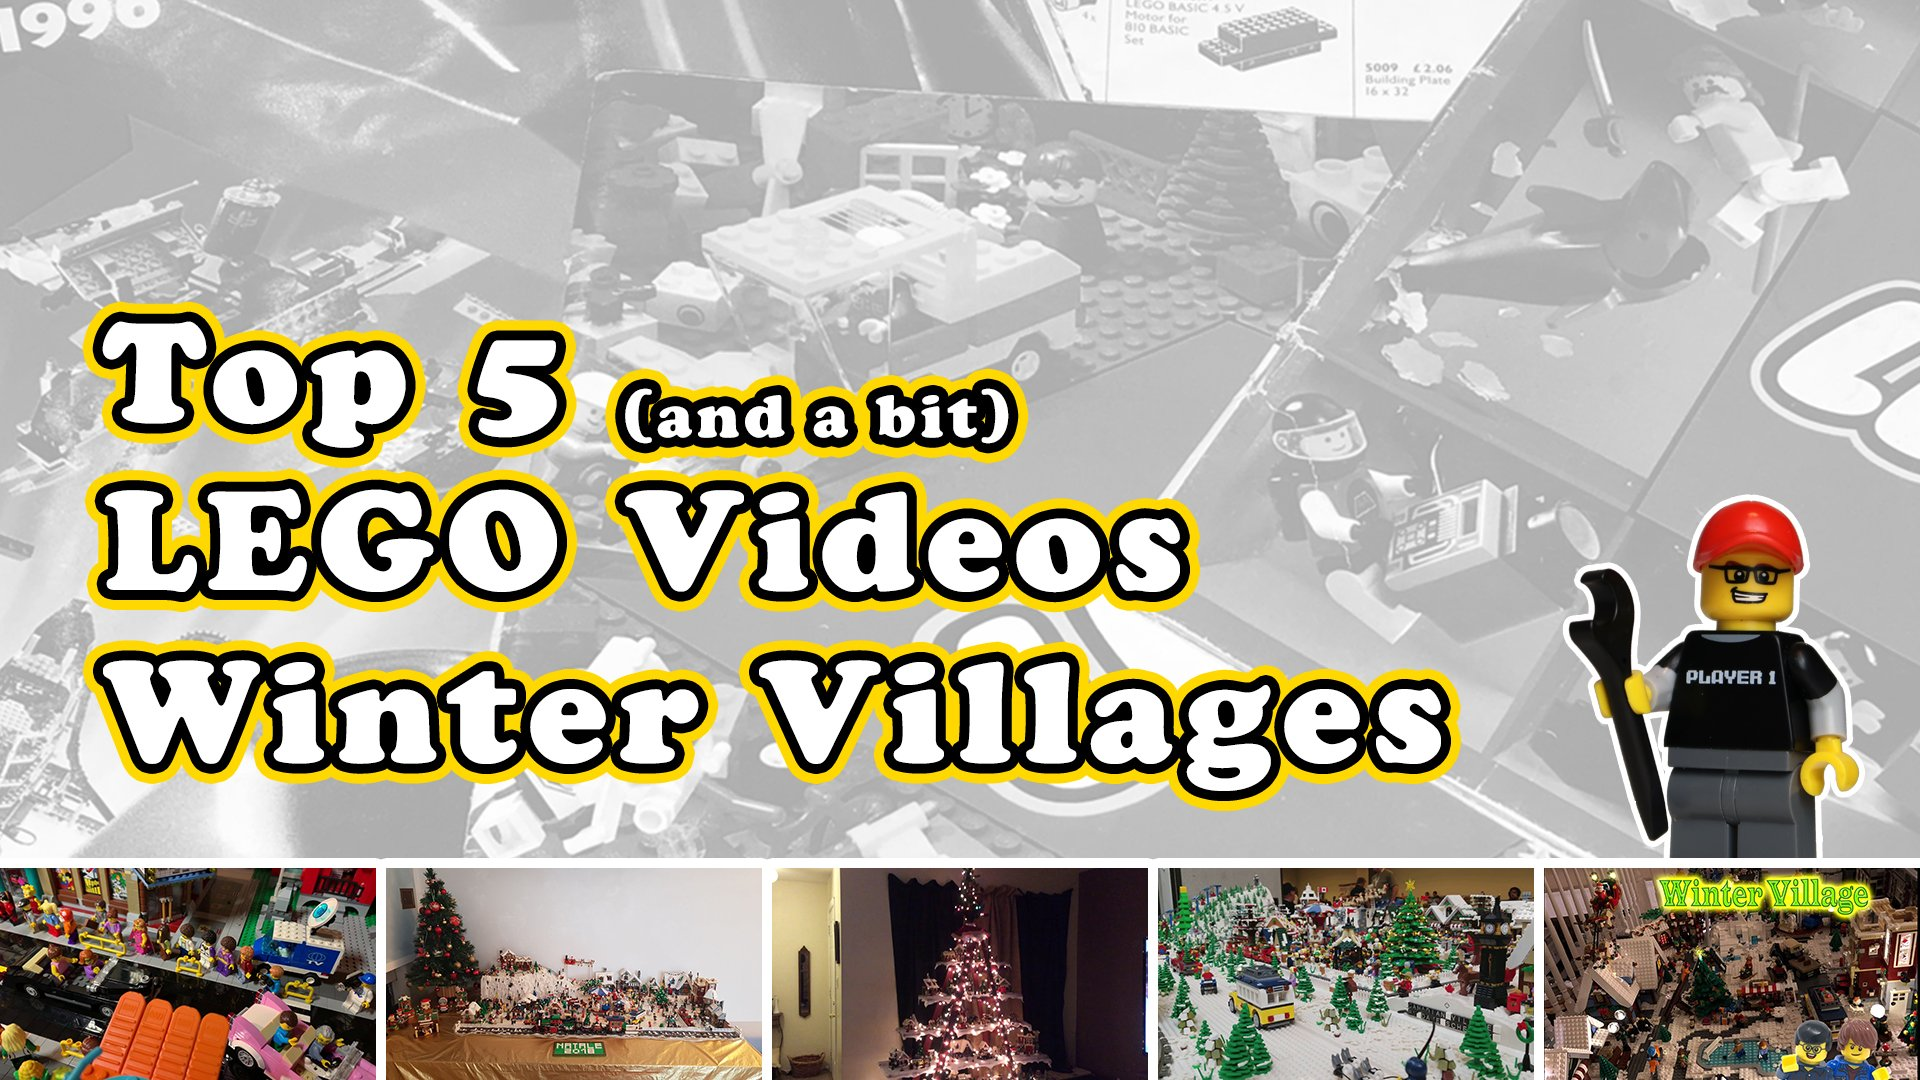 LEGO Top 5 And A Bit Winter Village Scenes! December 9th 2018